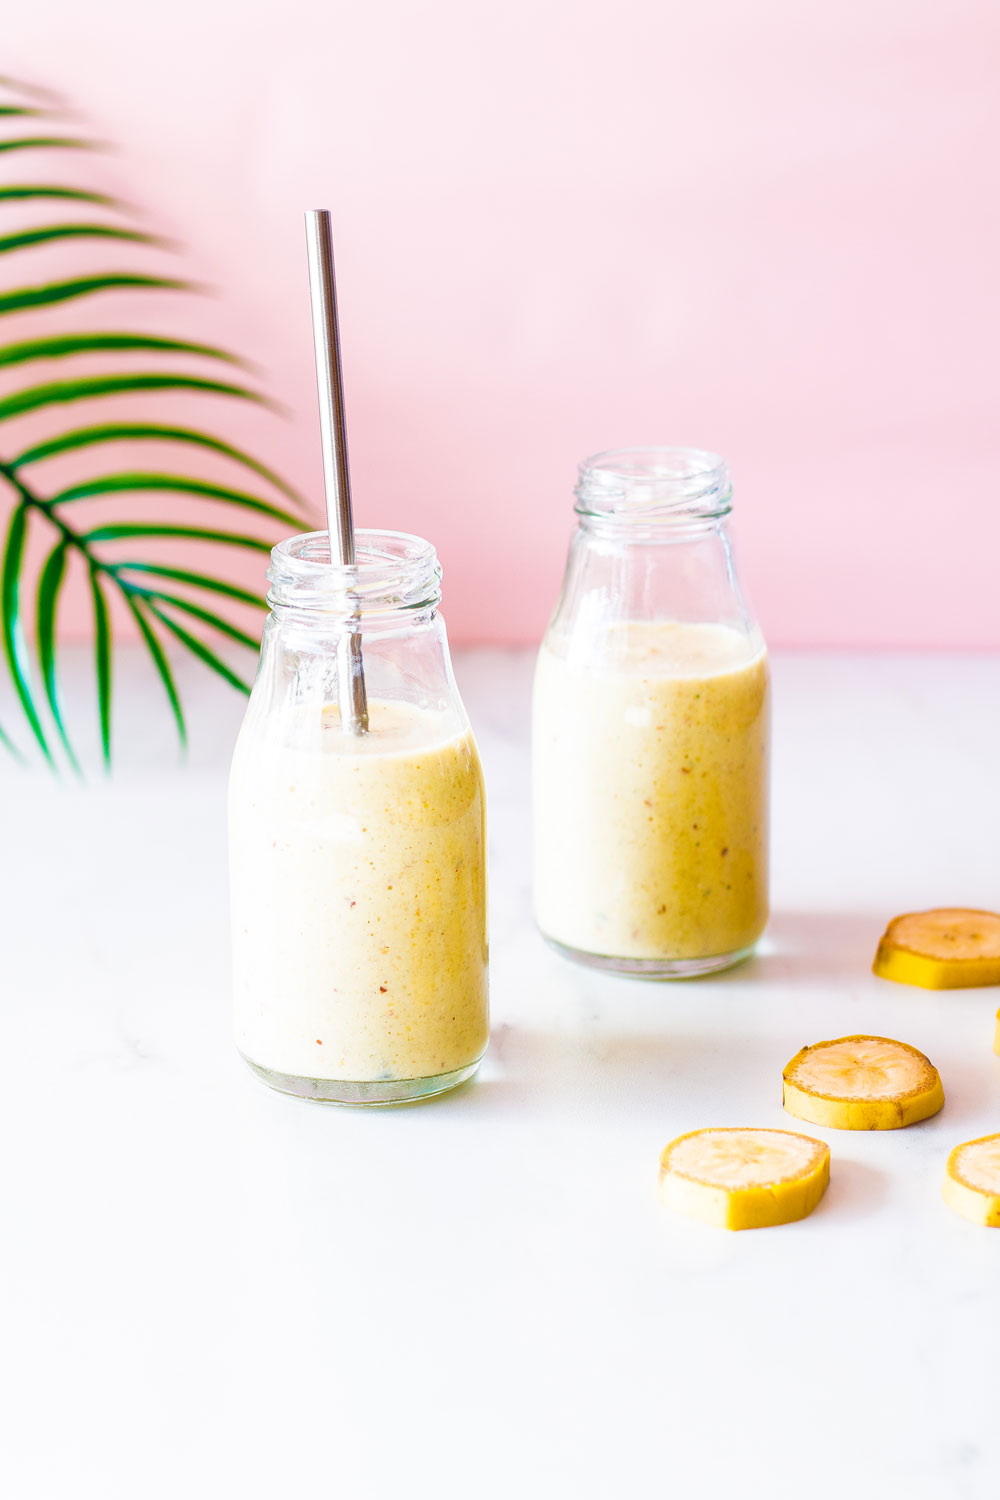 This delicious and athlete approved Banana-Oat Morning Smoothie includes all the fuel you need pre- or post-workout! https://www.spotebi.com/recipes/banana-oat-morning-smoothie/